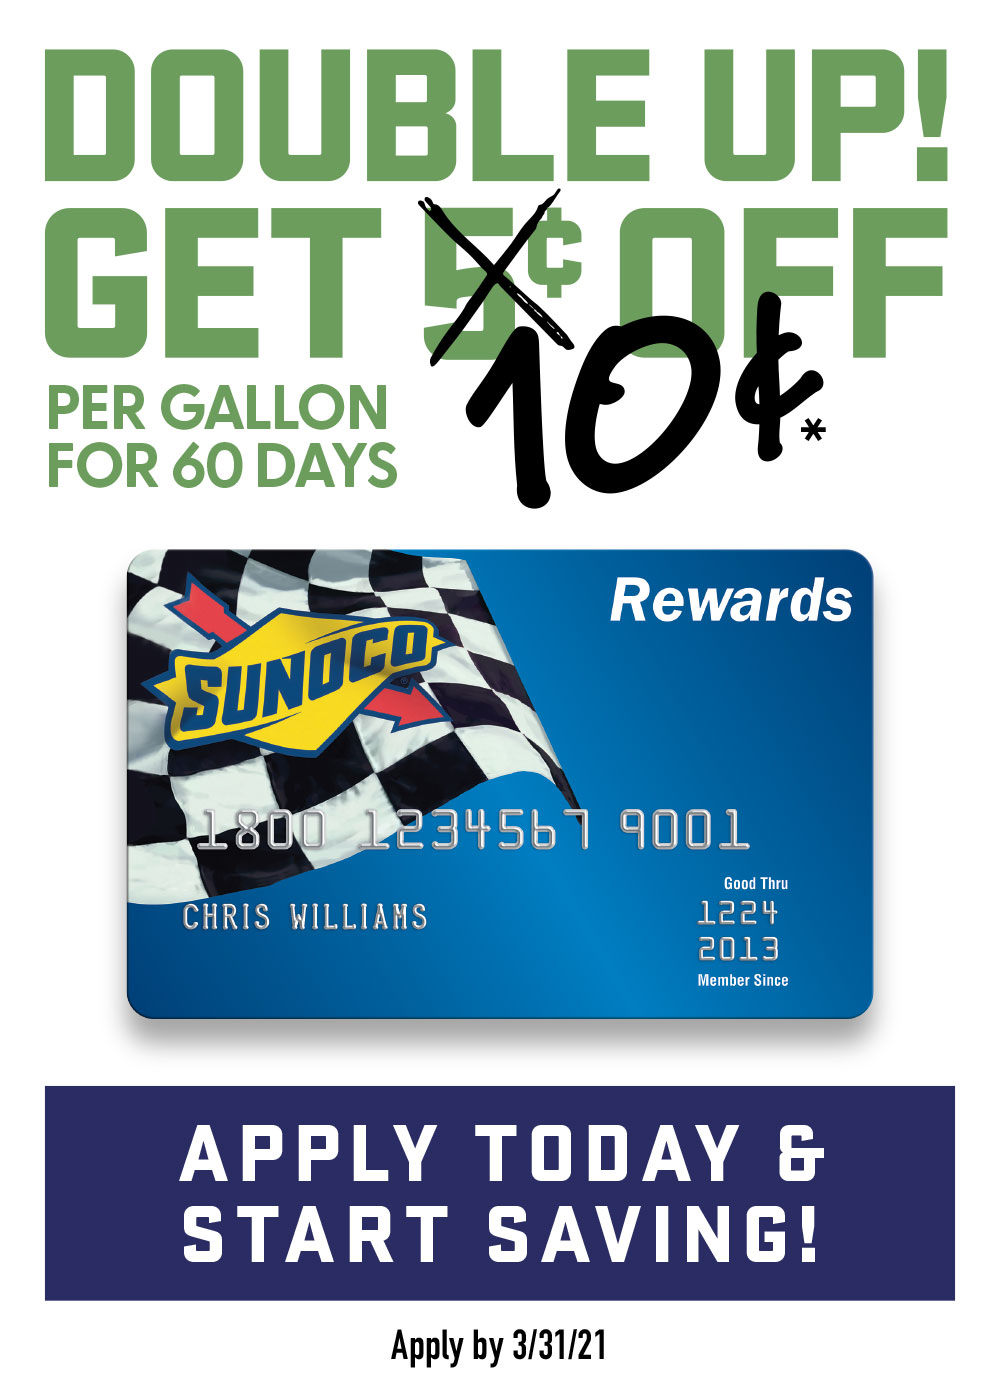 Double up! Get 10 cents off per gallon for 60 days. Apply today and start saving!